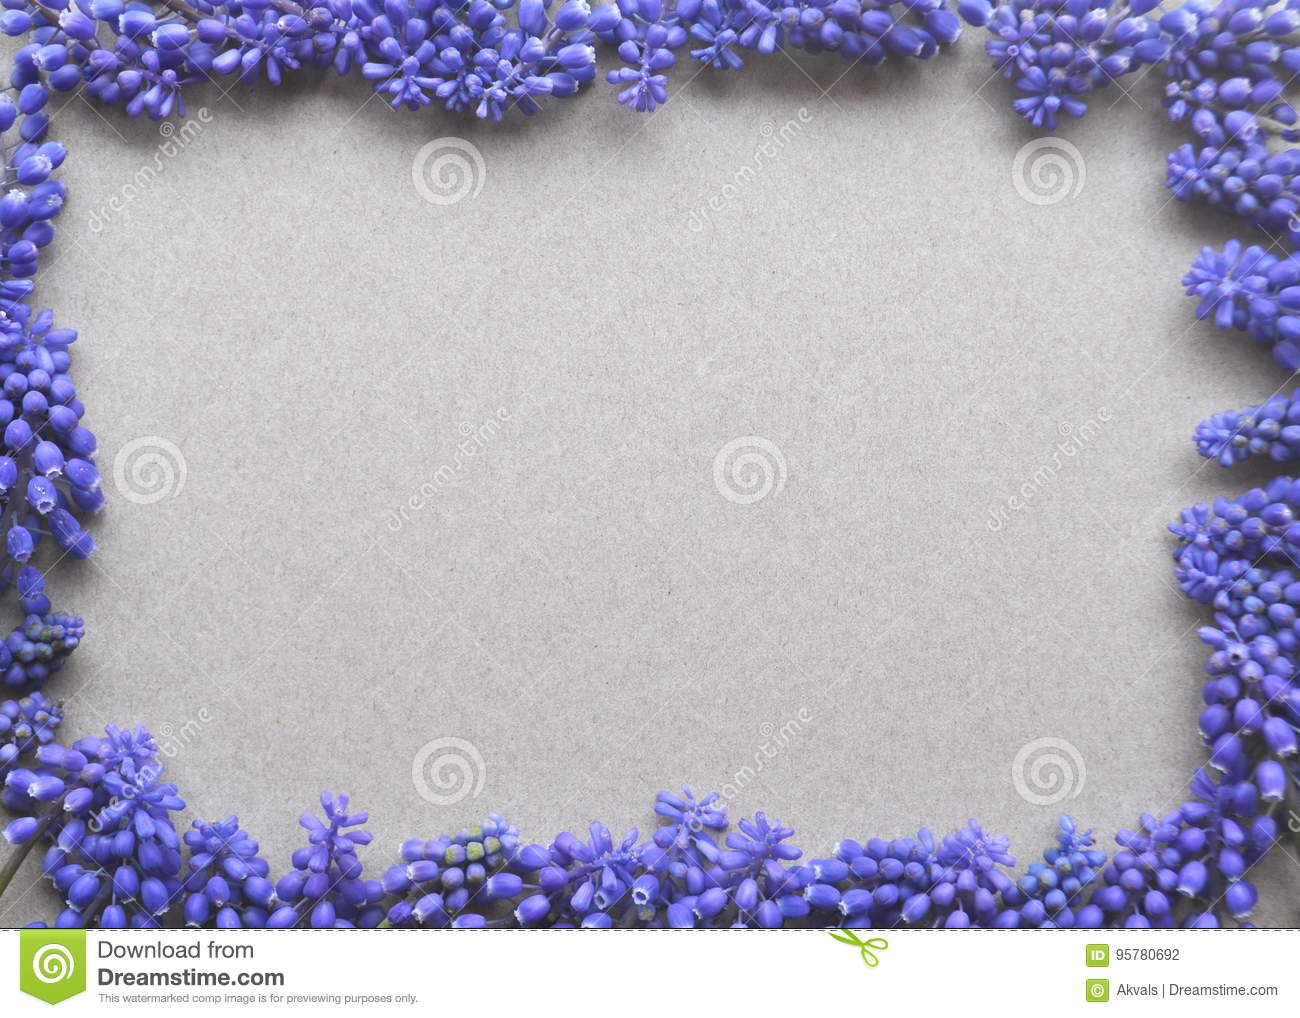 Top View Of A Brow Kraft Paper Background With Purple Violet